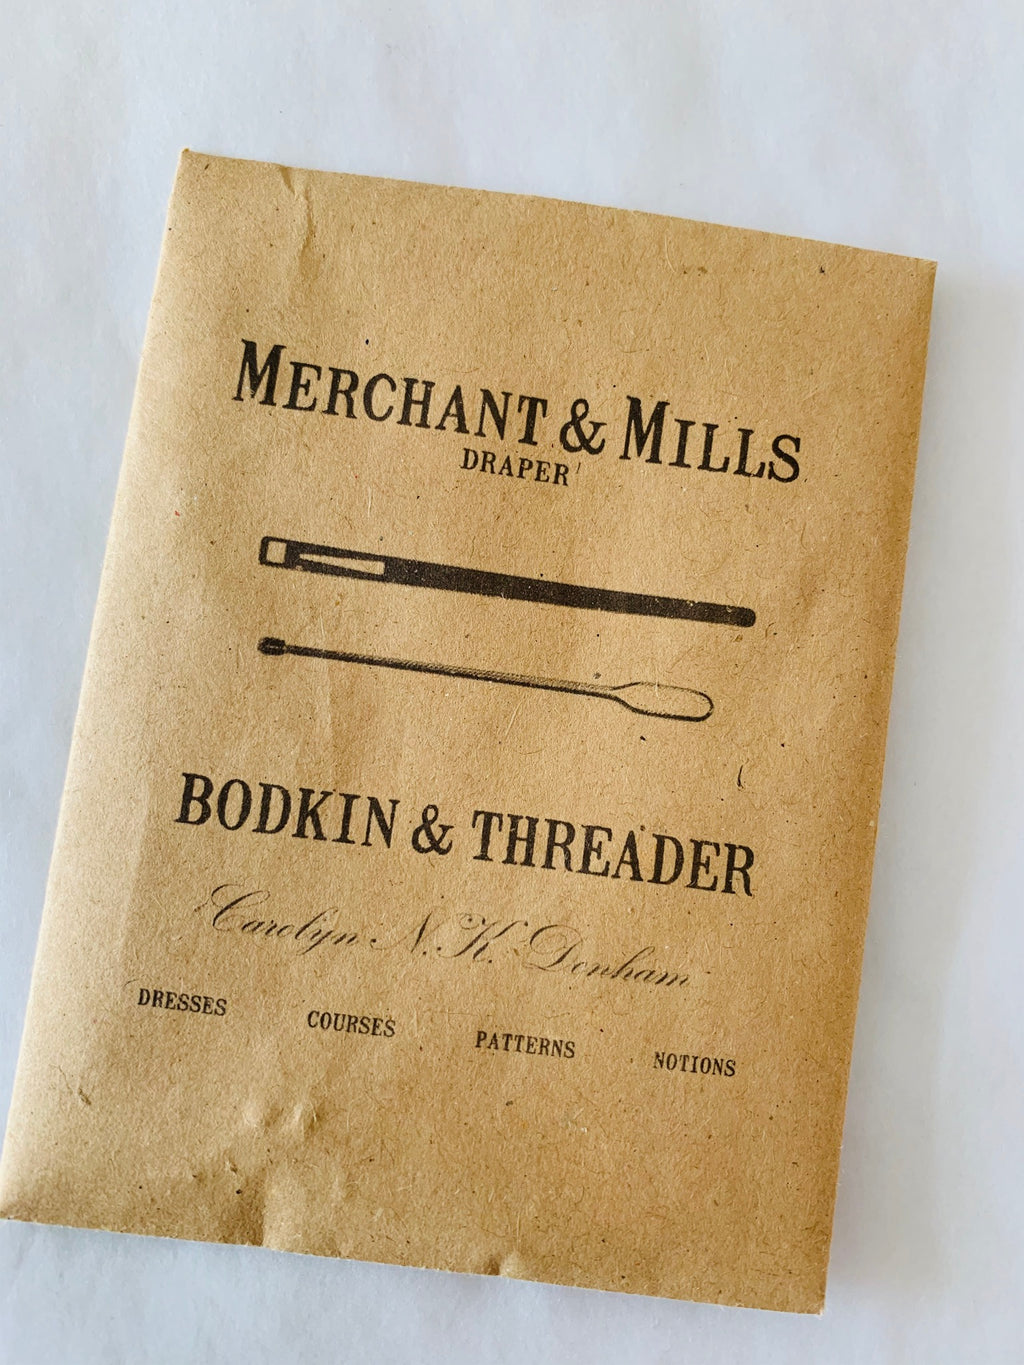 Merchant and Mills Bodkin and Threader